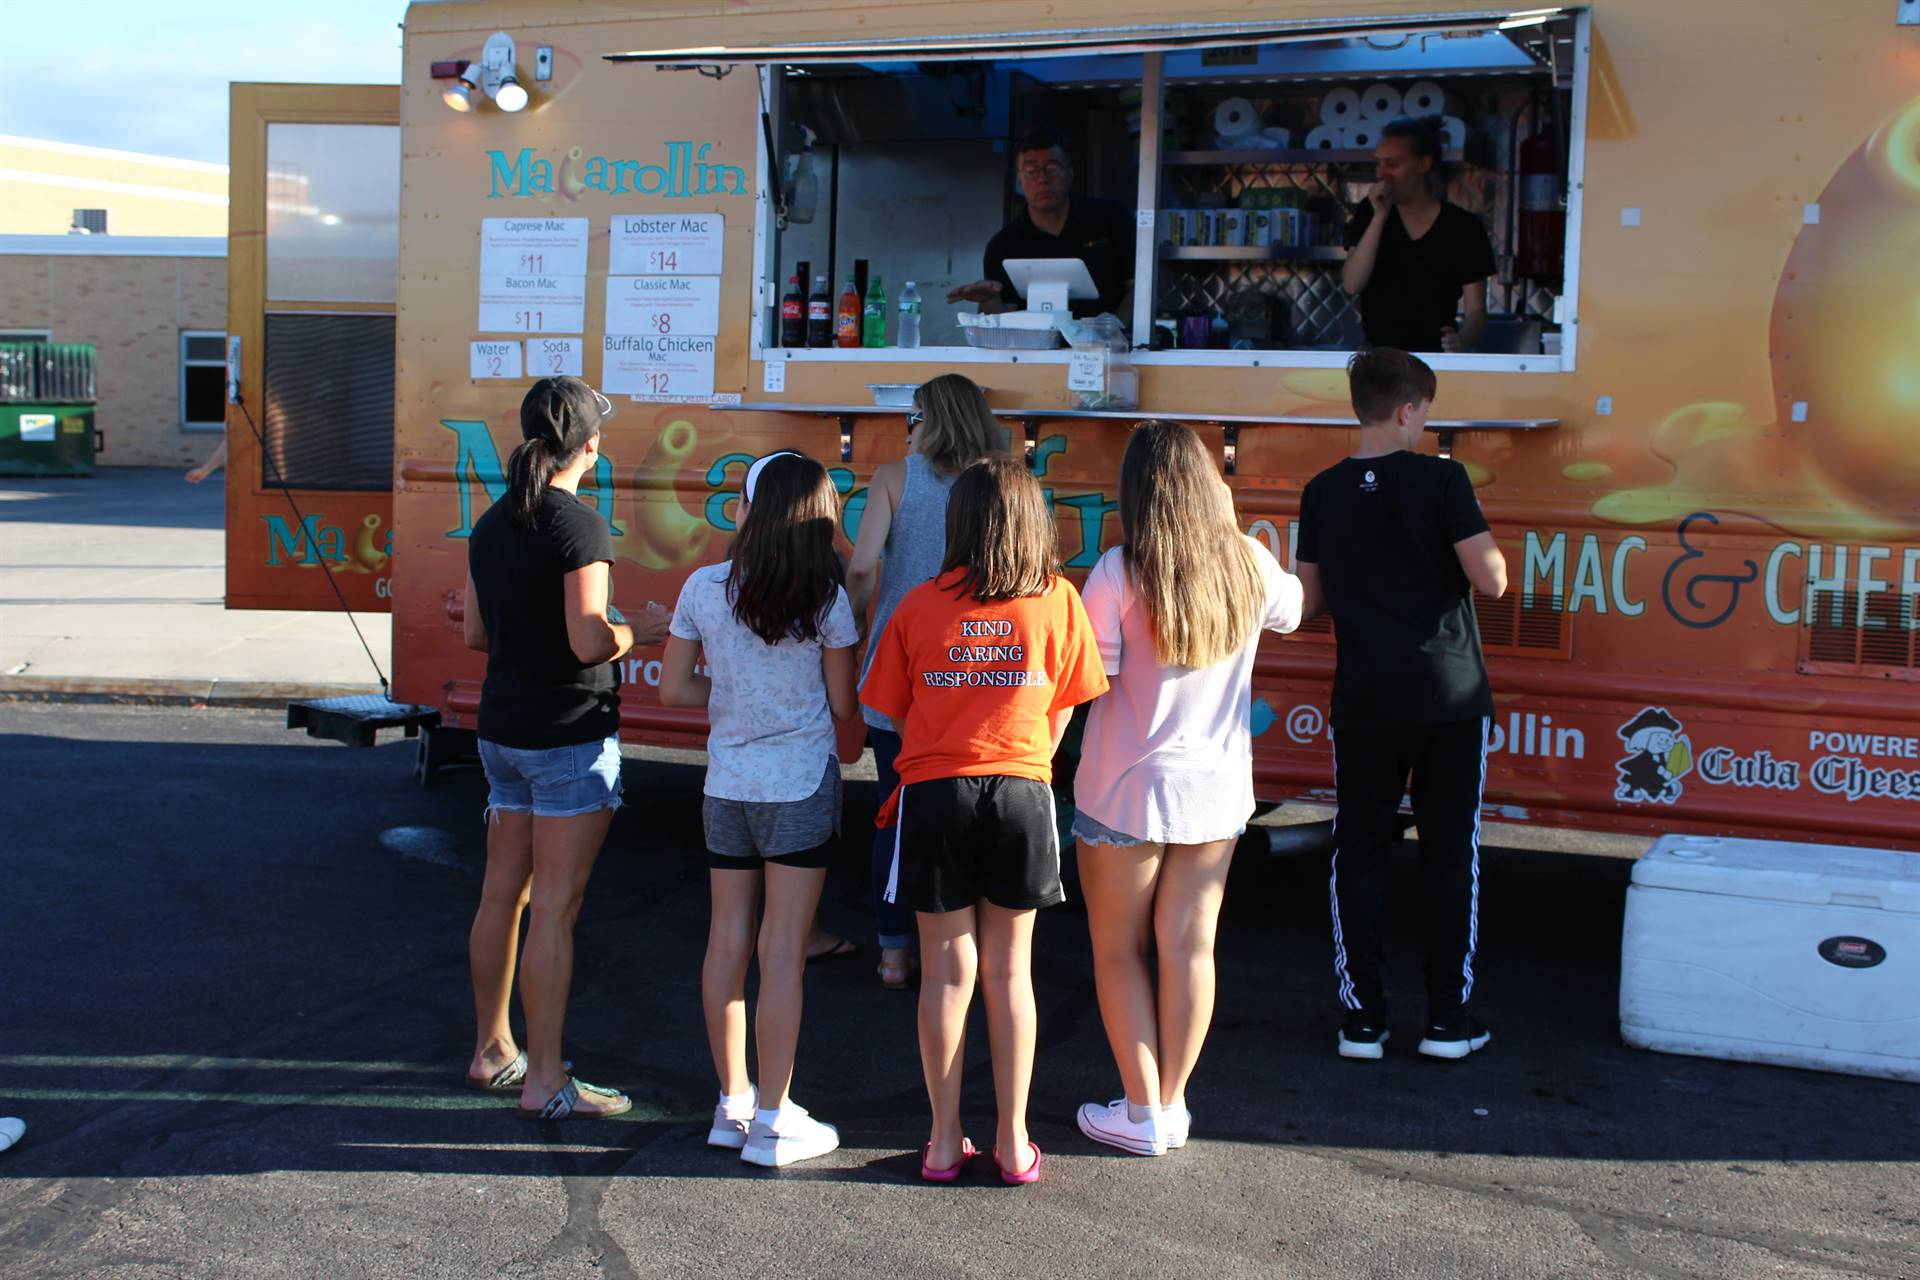 People line up in front of a food truck.